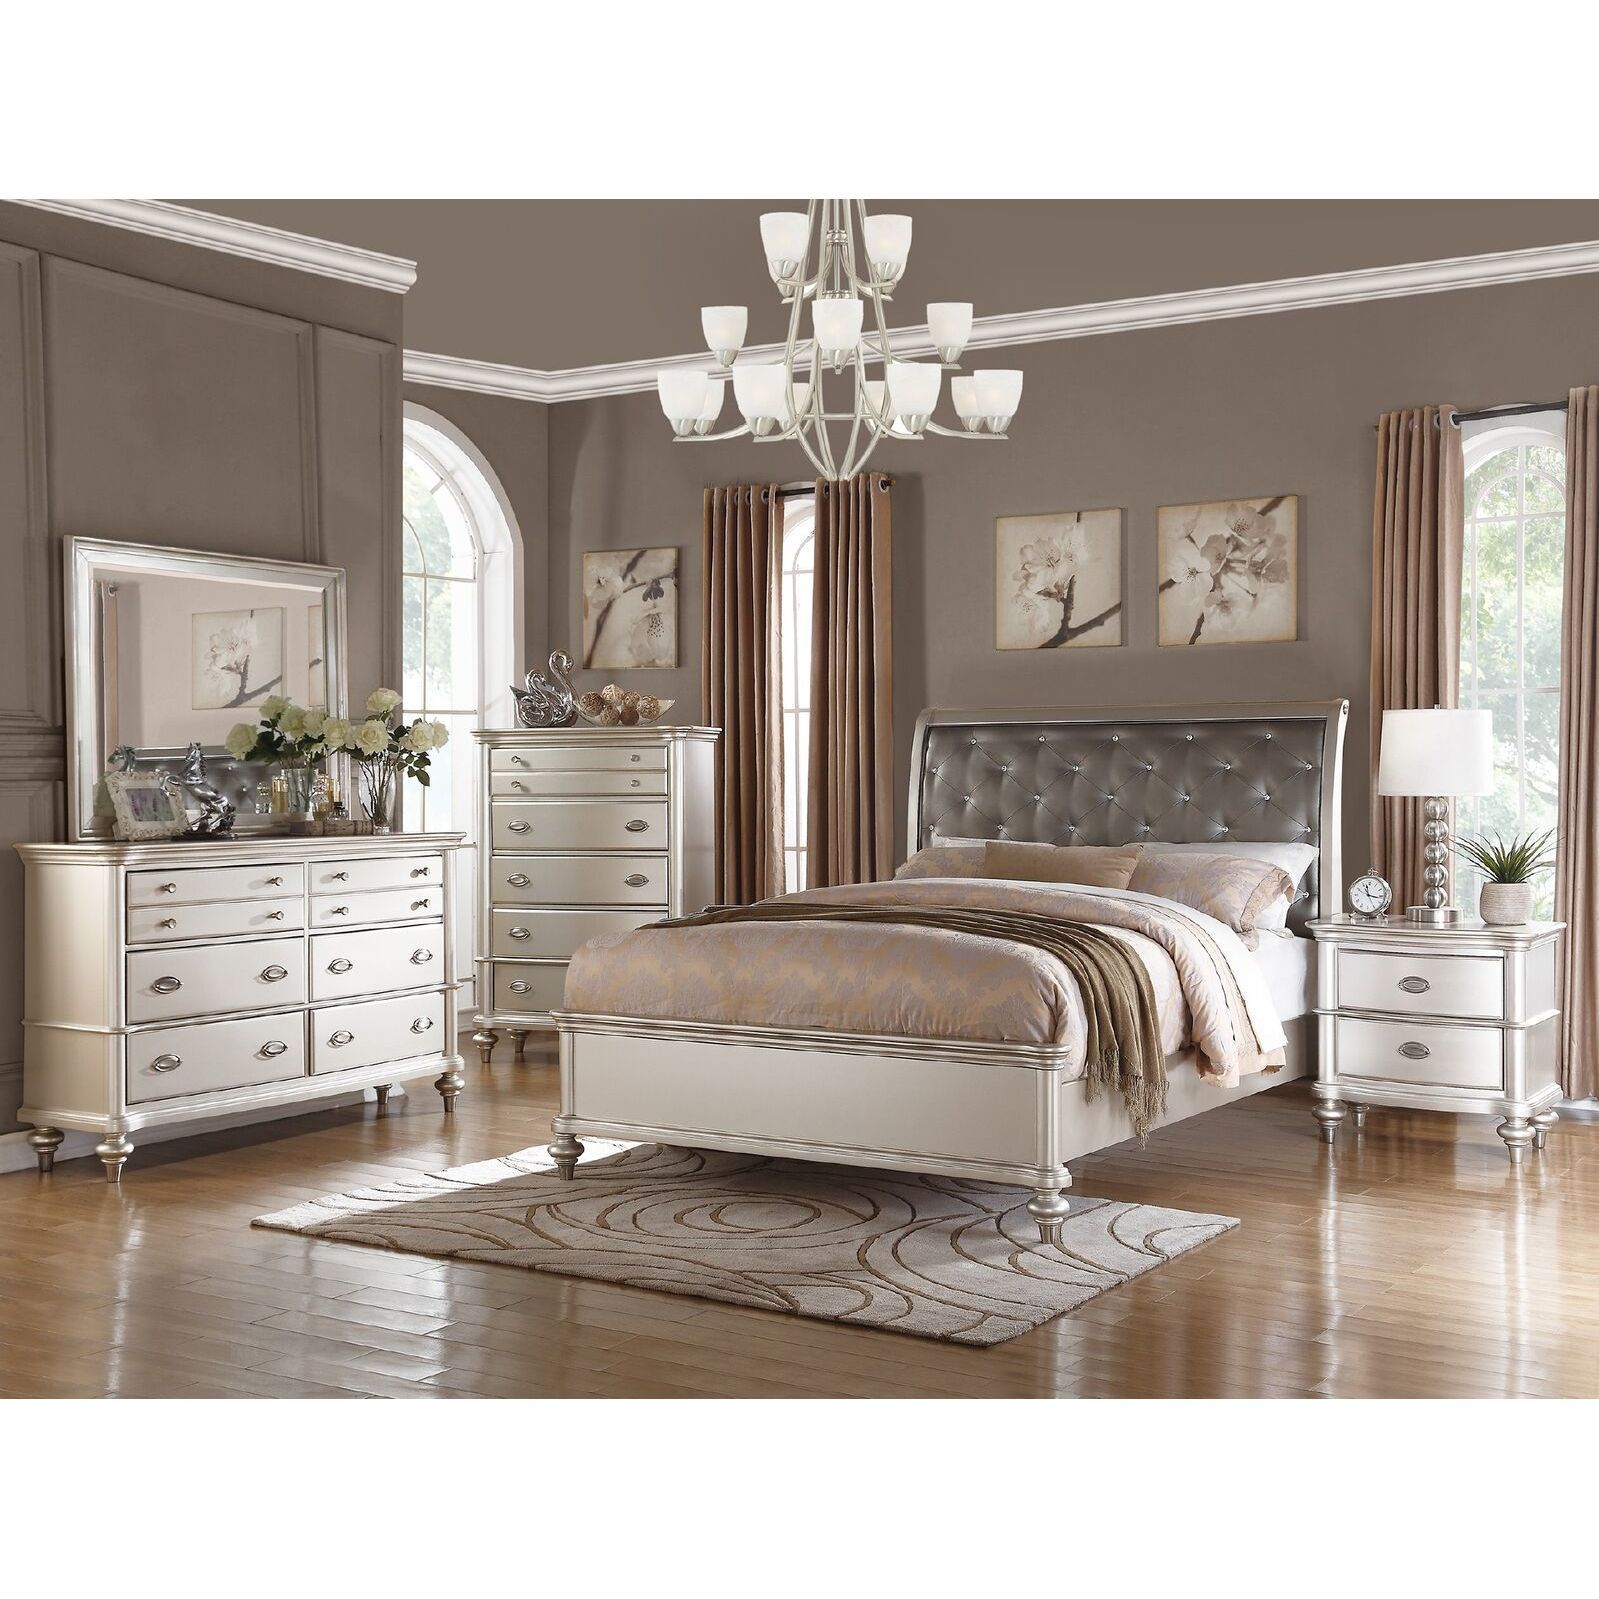 Silver Orchid Boland 4-piece Bedroom Set | Silver bedroom ...